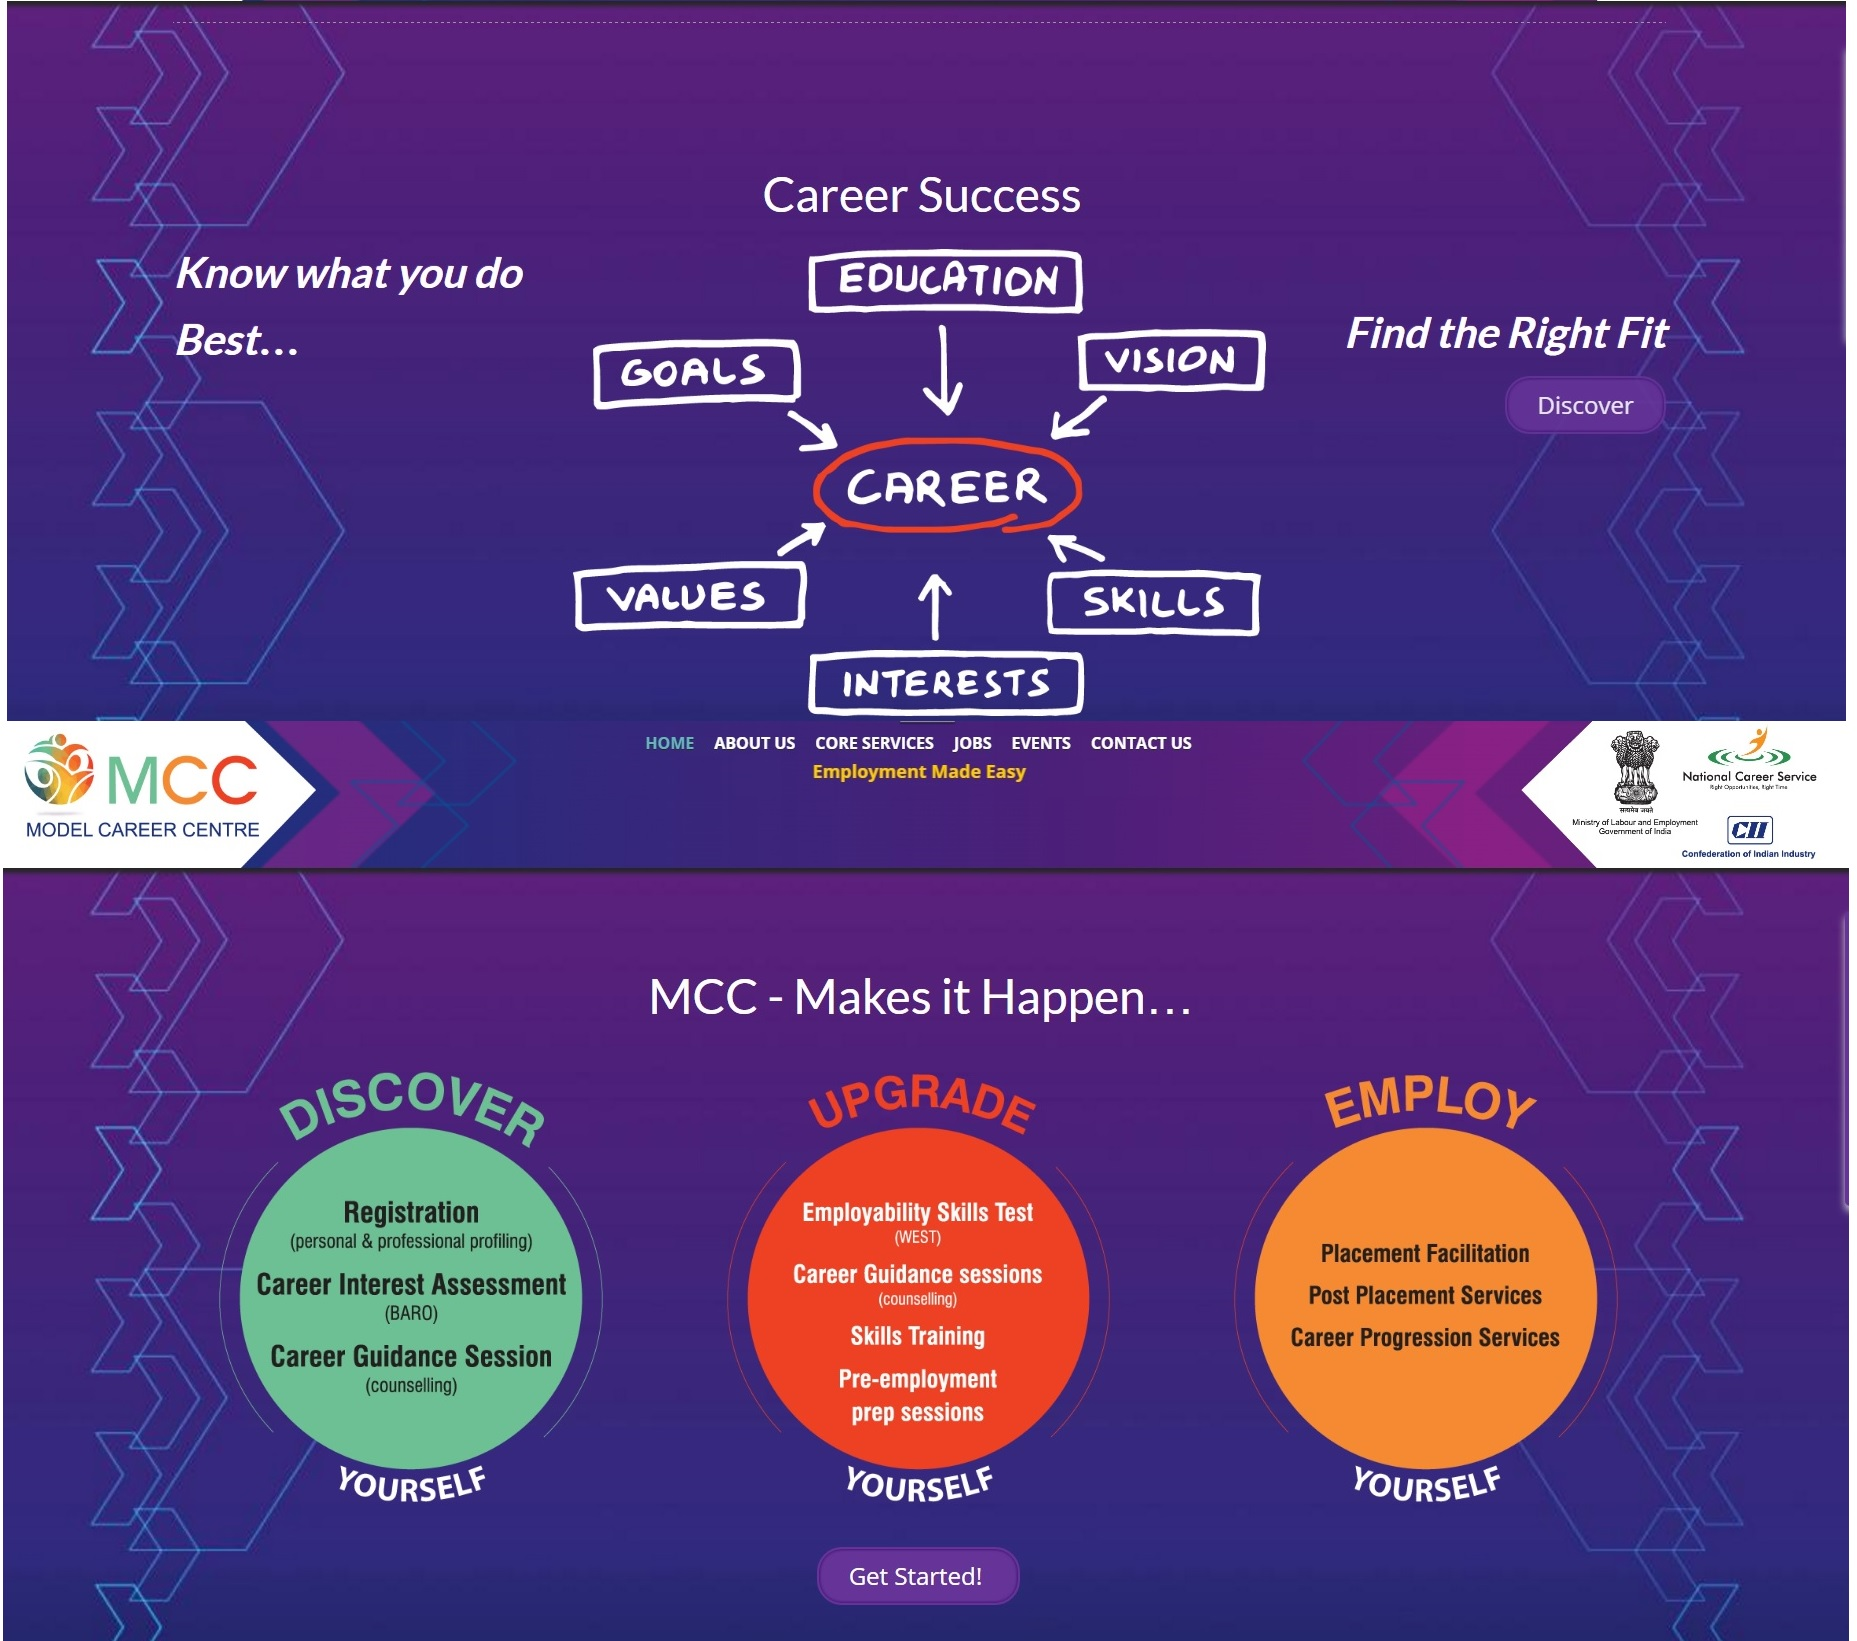 Model Career Centres